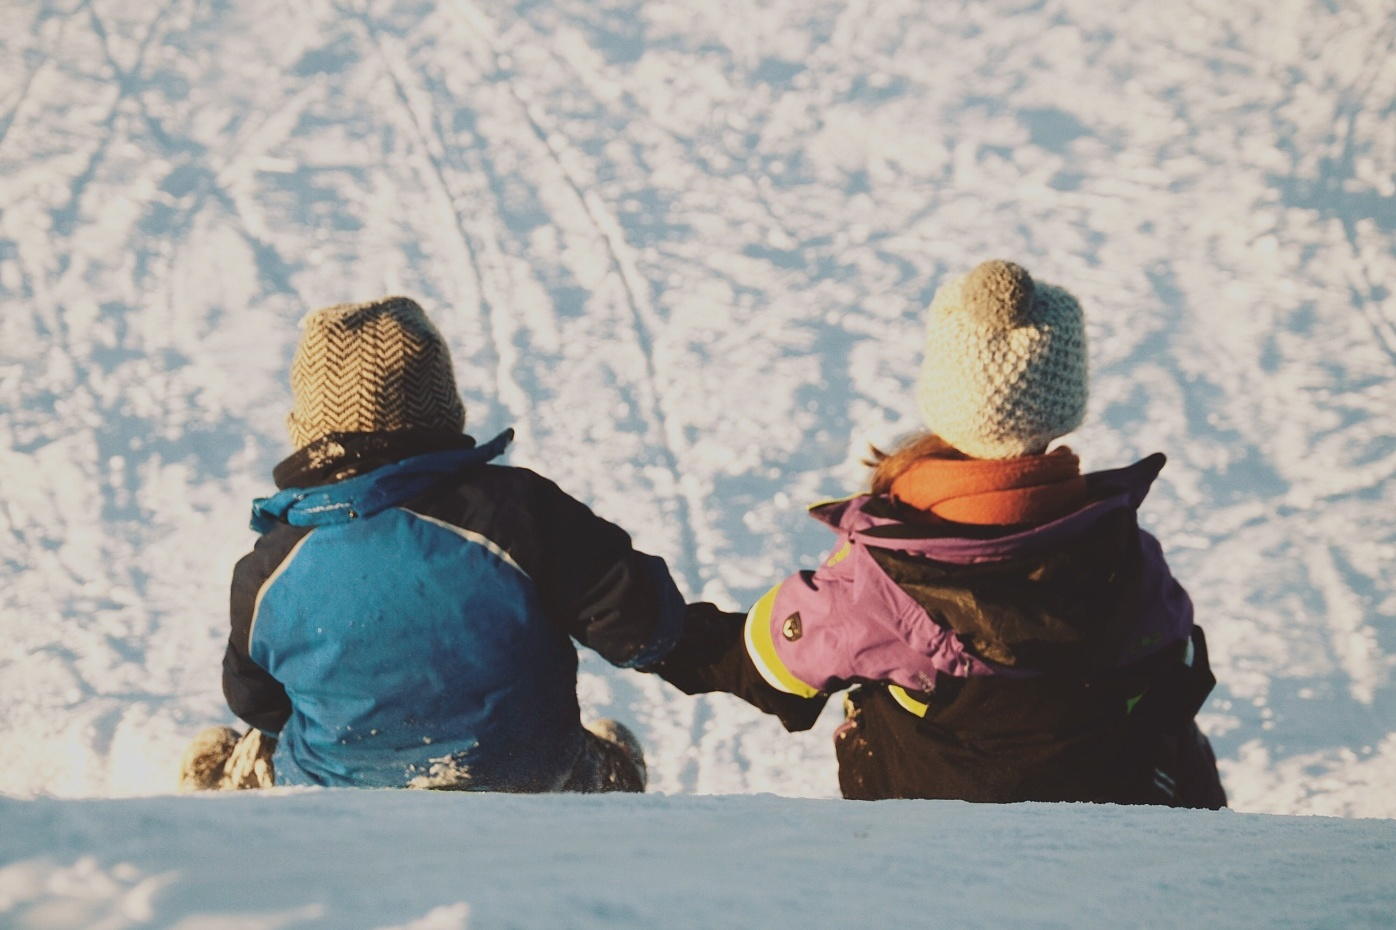 Two small children in winter clothes about to sledge down a snowy bank